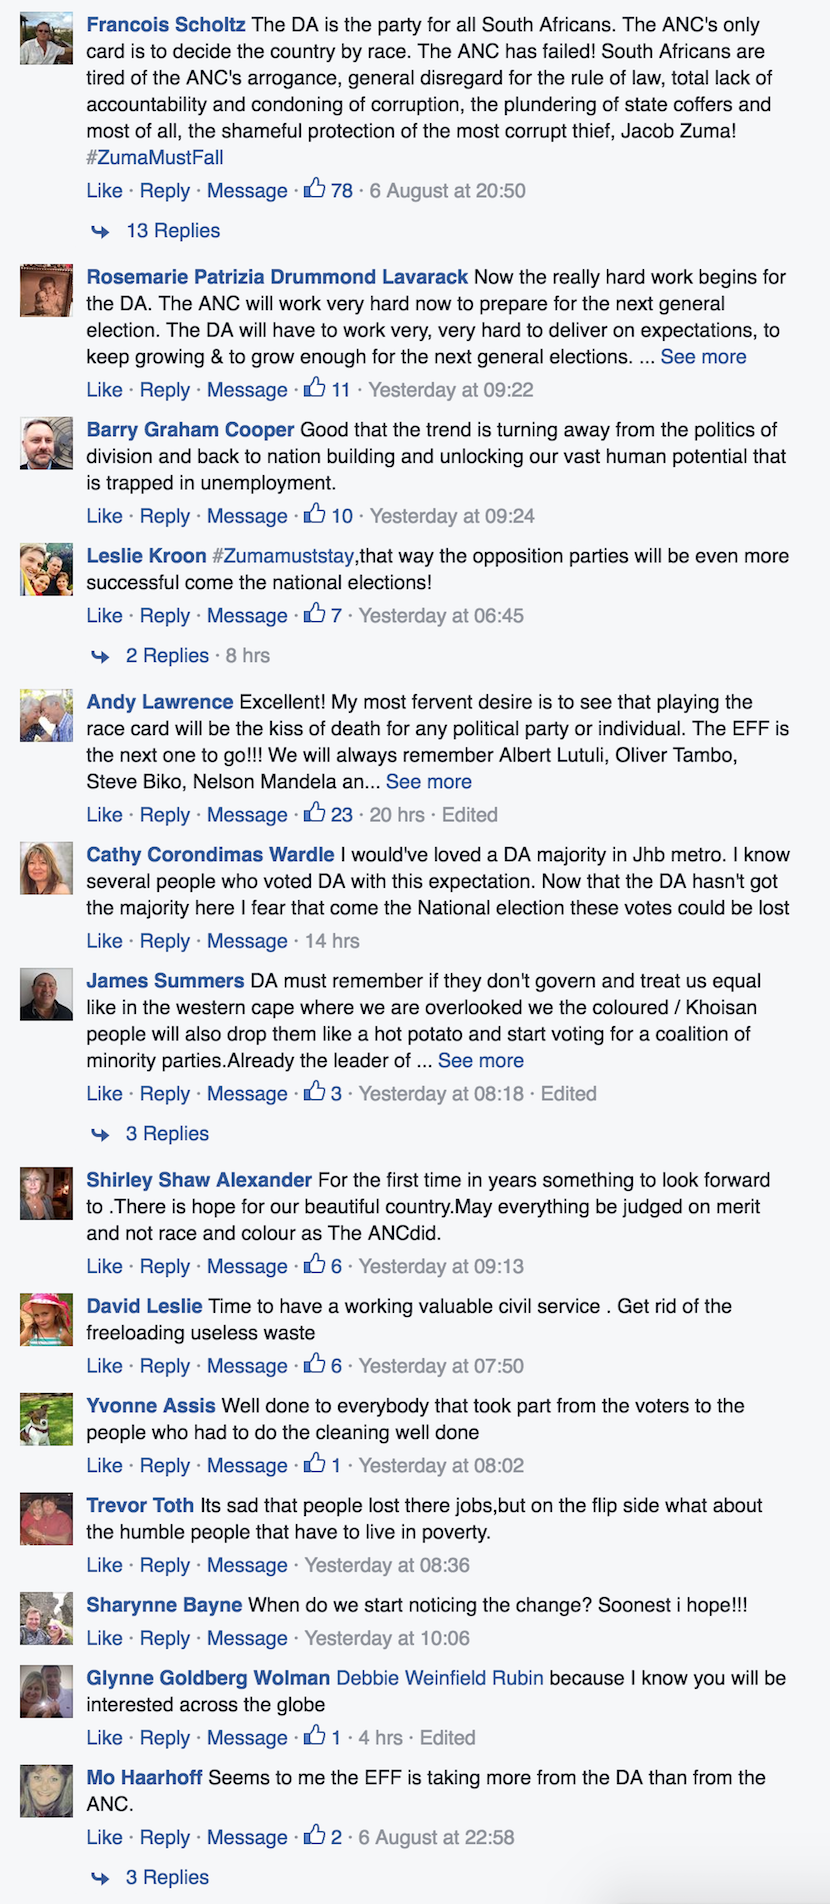 Some of the comments under the link to this story on Alec Hogg's Facebook site